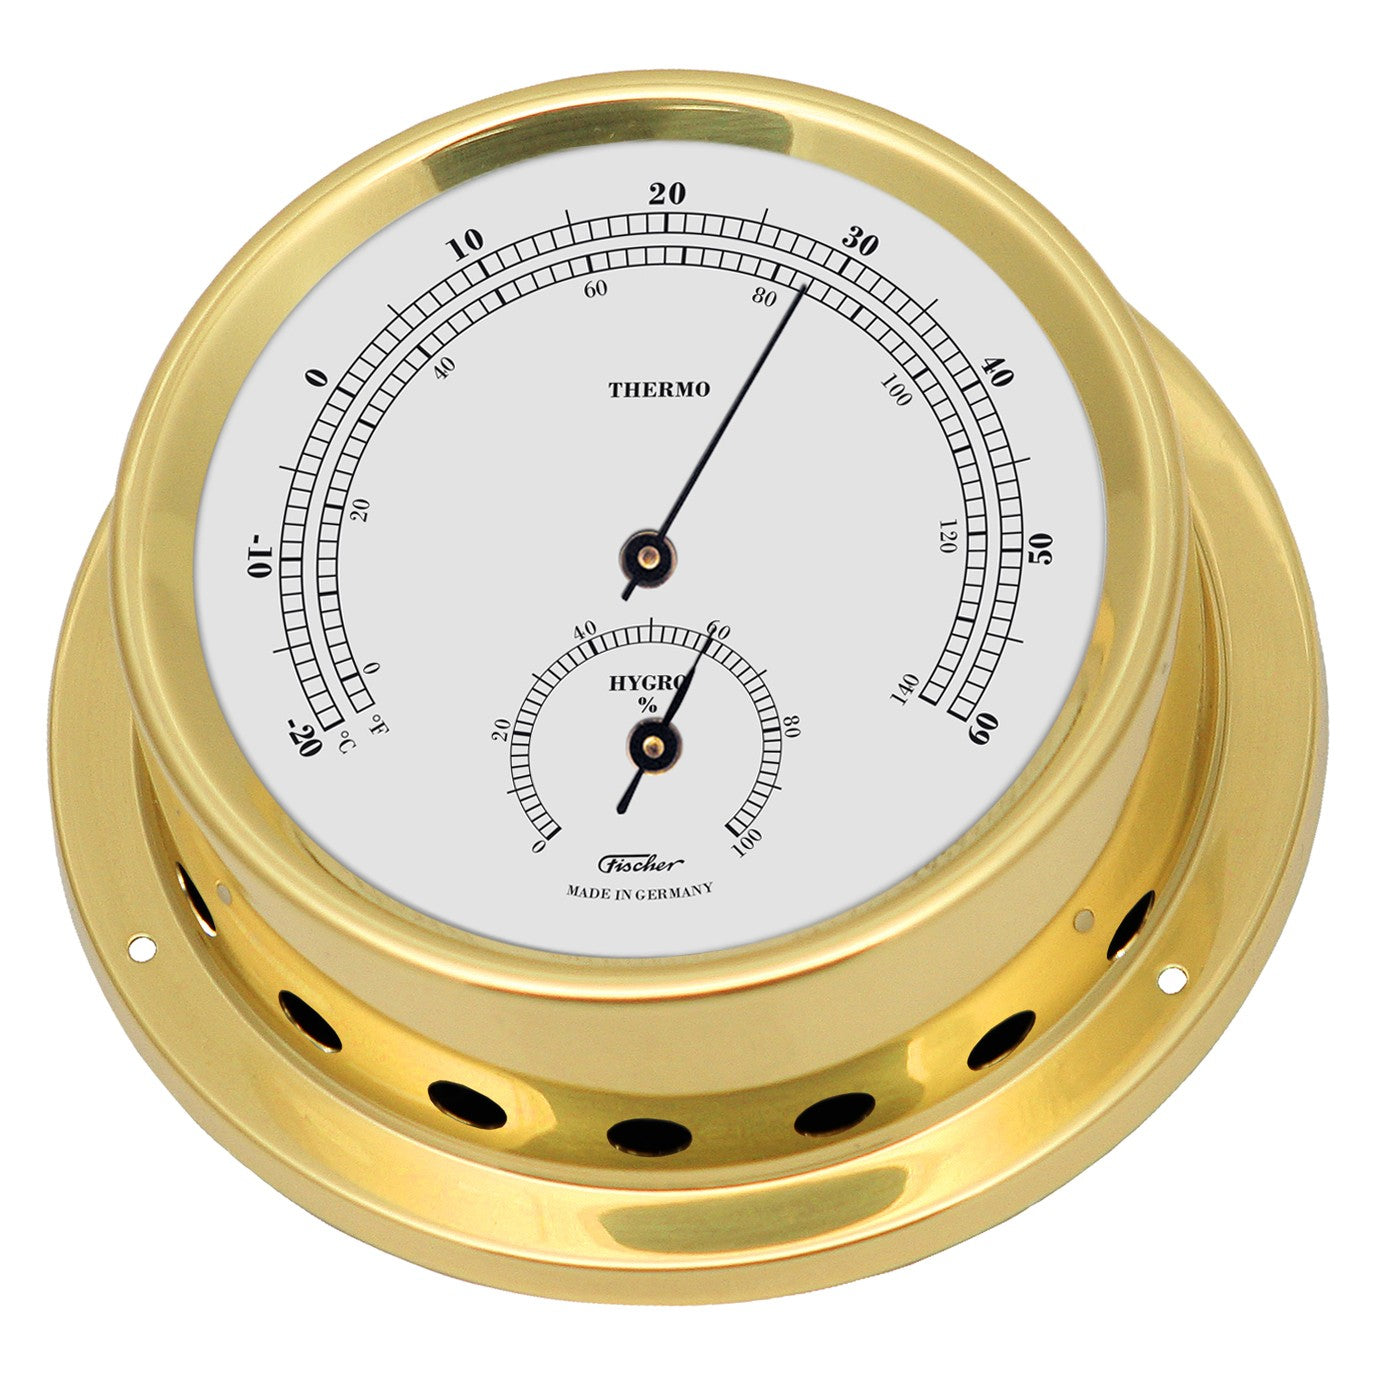 1508TH | THERMOHYGROMETER 125 MM - Omniyacht®